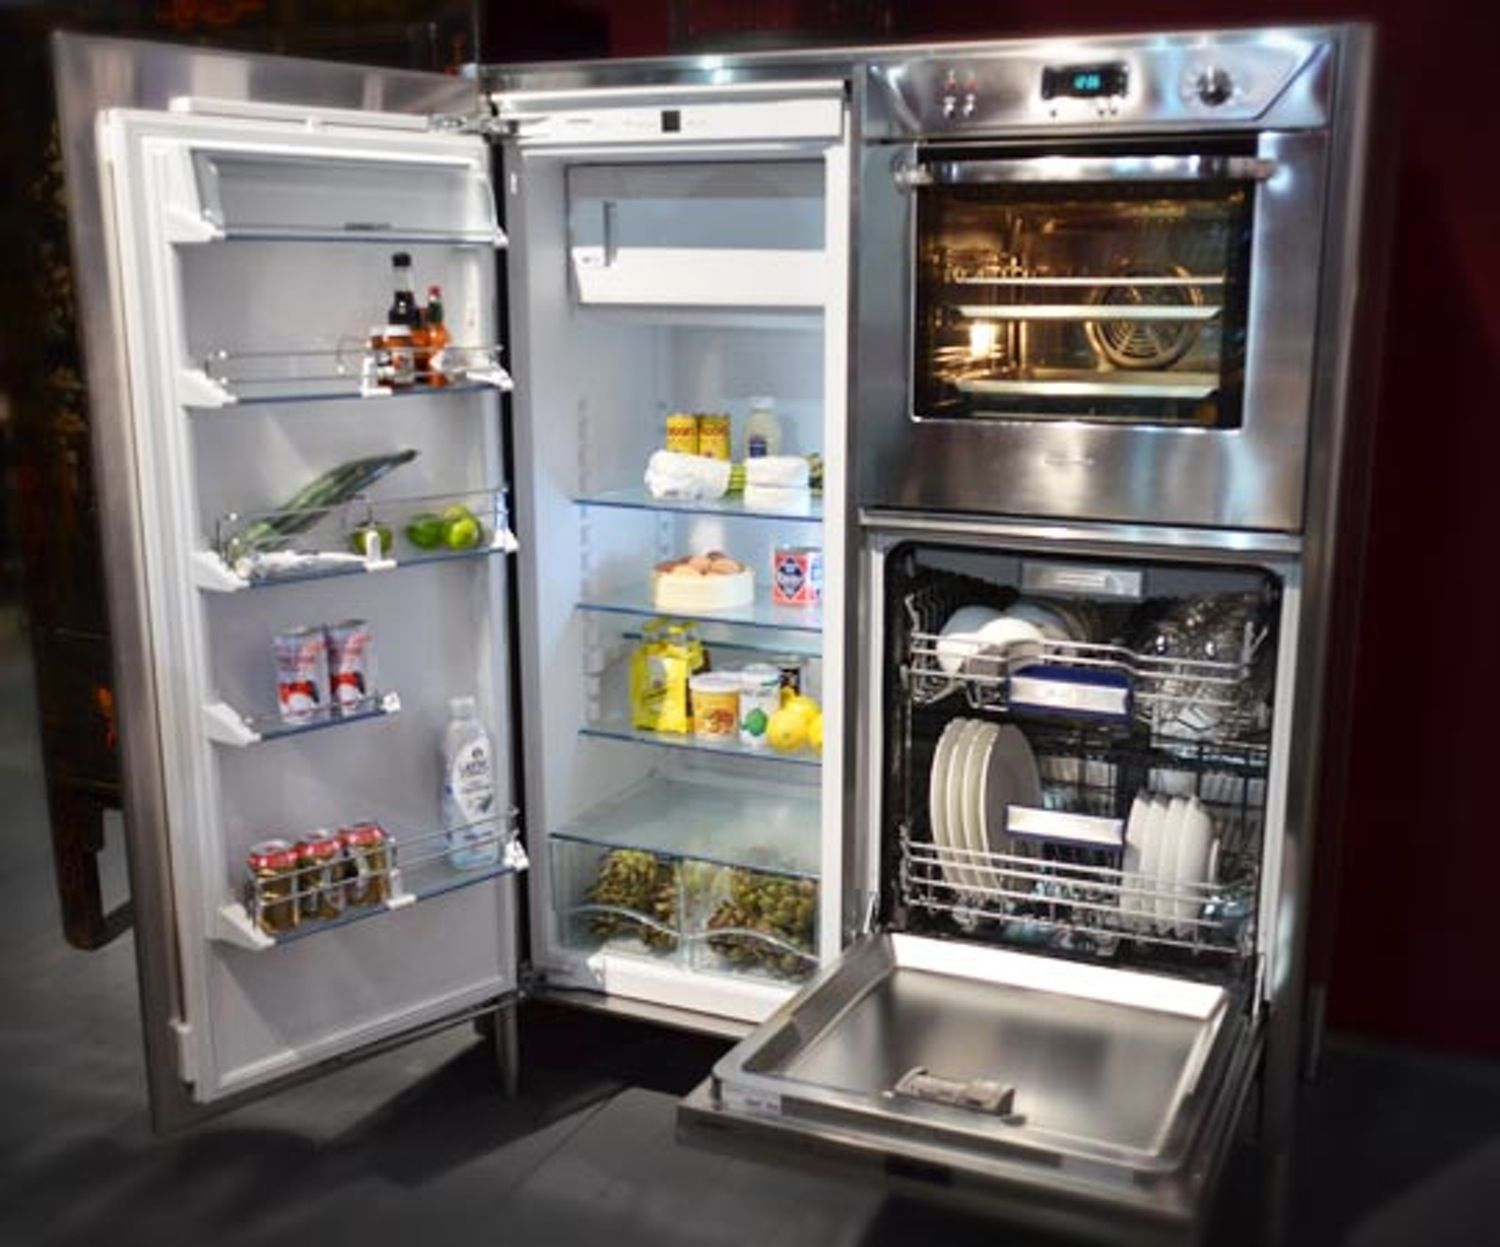 Combination Refrigerator Dishwasher Oven Unit From Alpes Inox Tiny House Appliances Tiny House Living Small Fridges